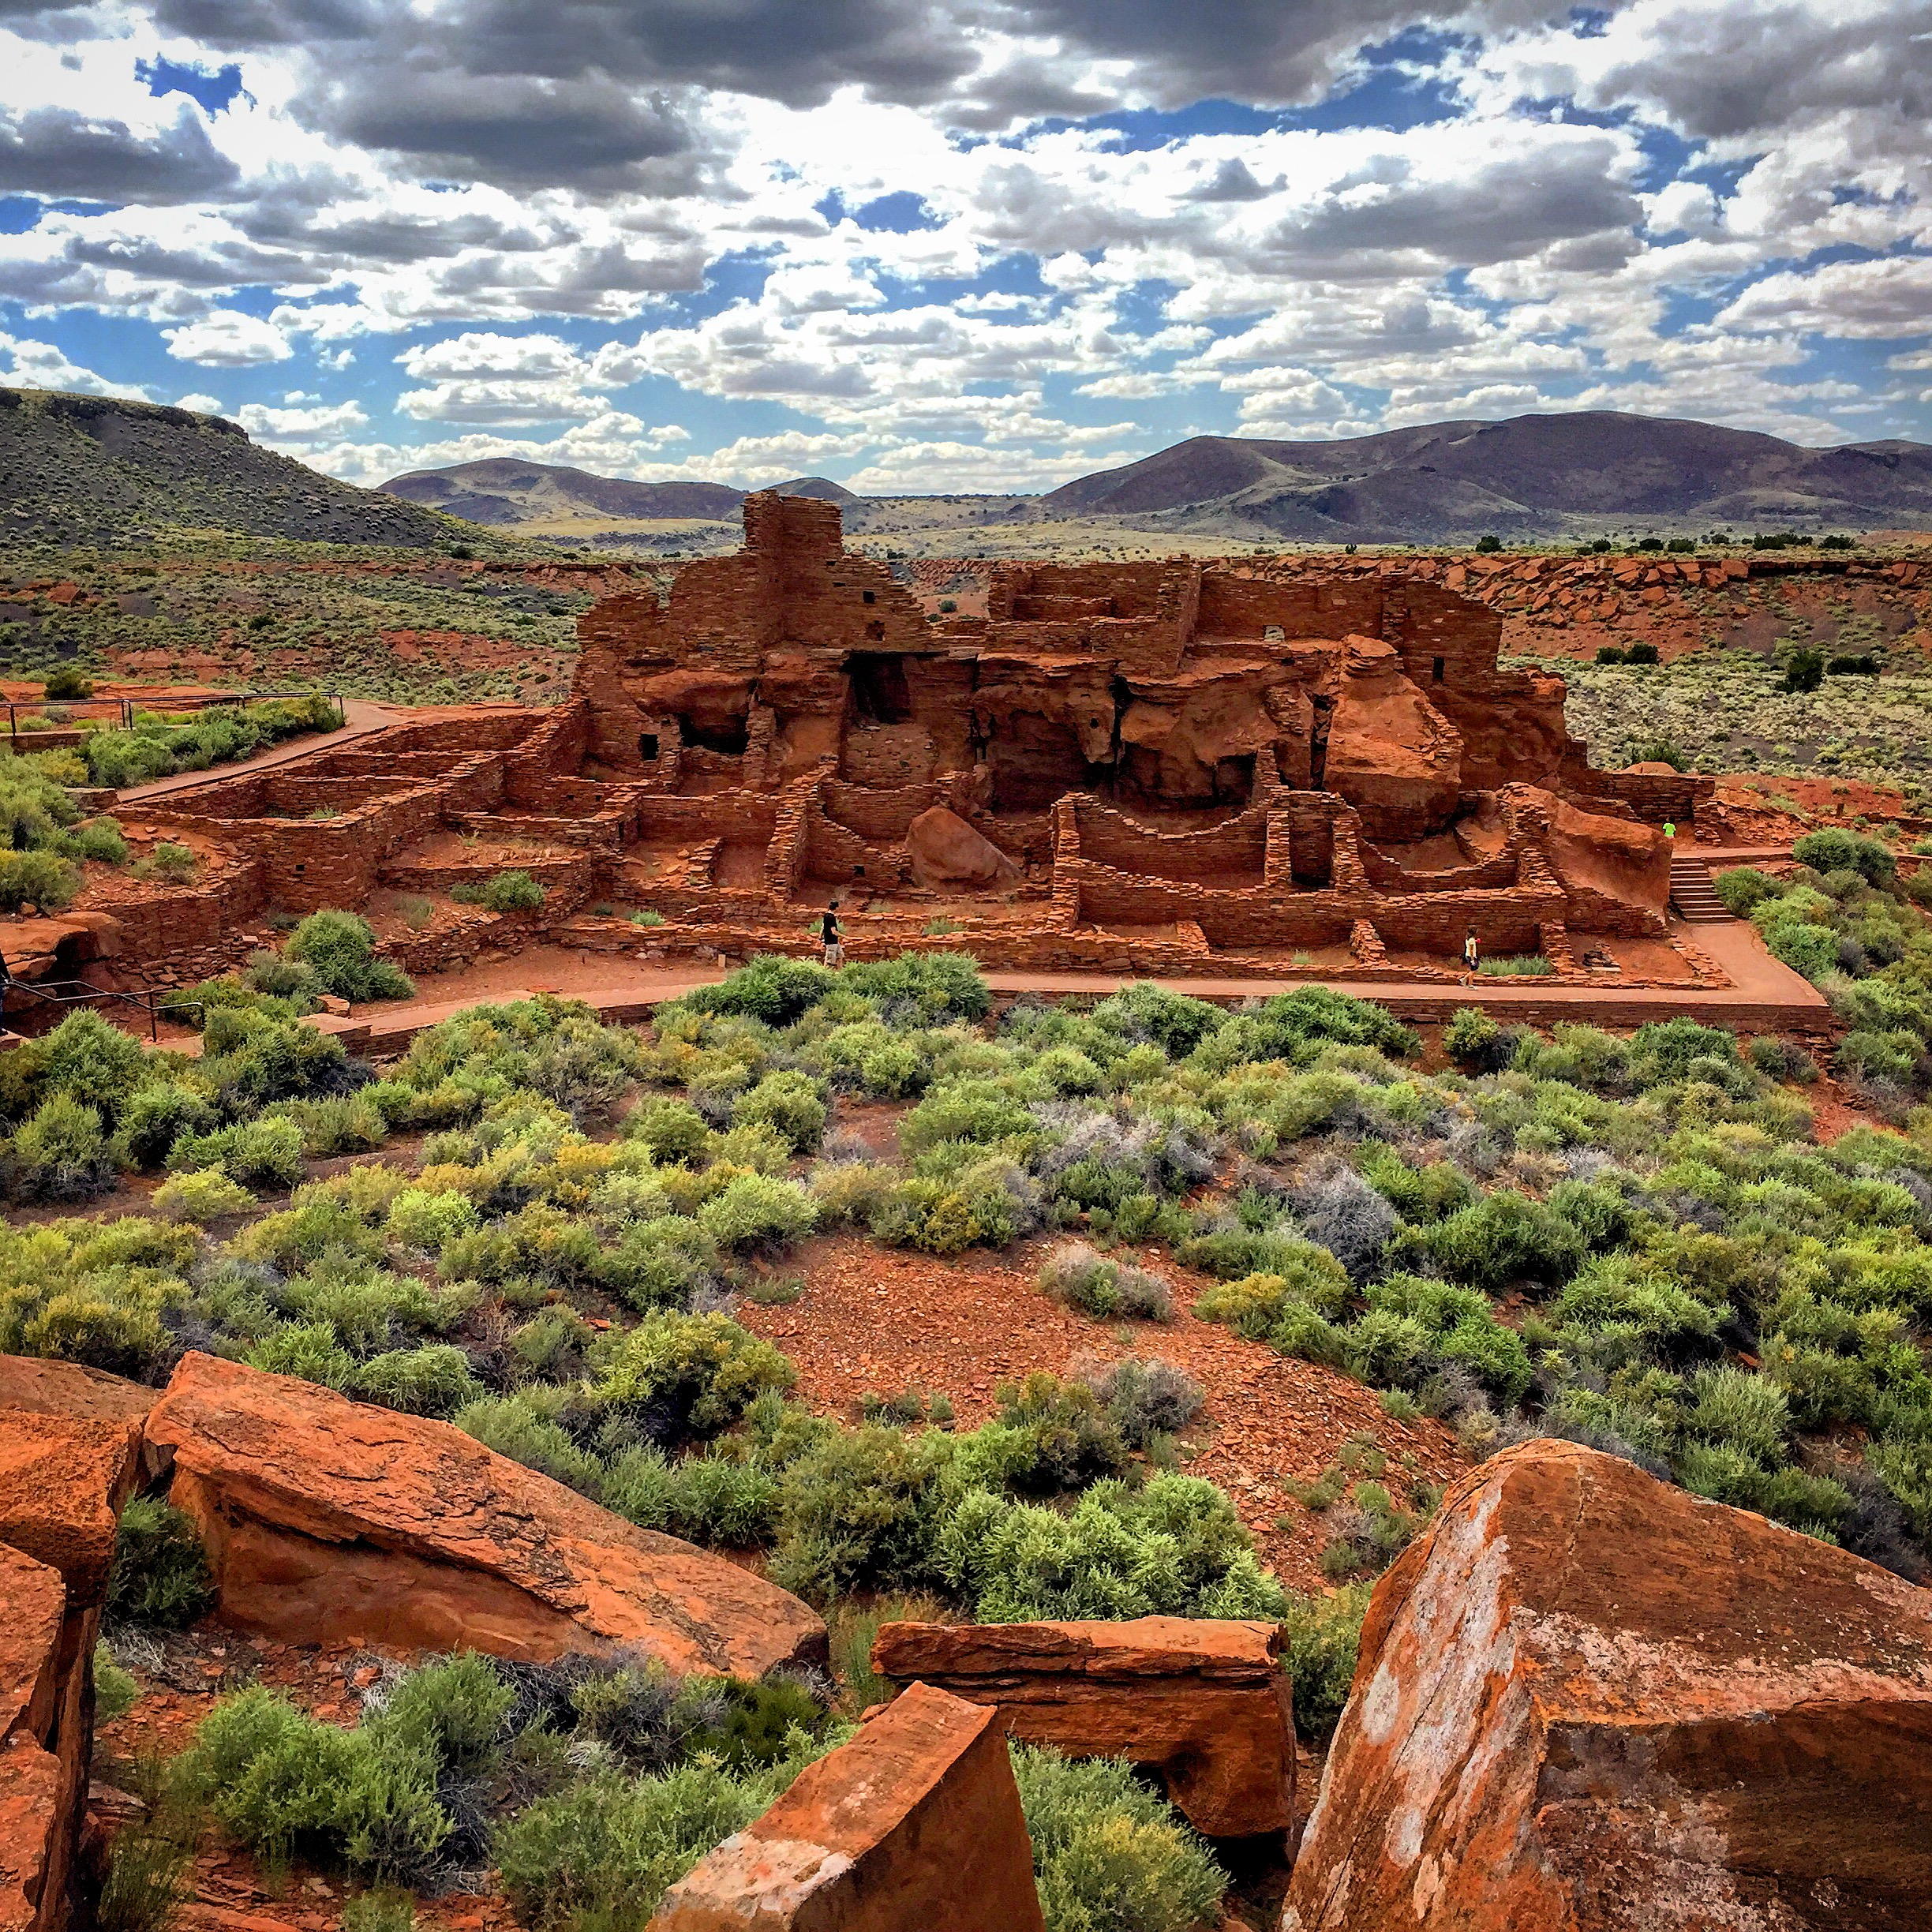 grand canyon sunset helicopter tours from las vegas with Sunset Crater Volcano Wupa I Indian Ruins on Sunset Crater Volcano Wupa i Indian Ruins furthermore GOLDEN GATE PARK moreover Grand Celebration Sunset Tour further Havasupai Falls Grand Canyon in addition Grand Canyon National Park.